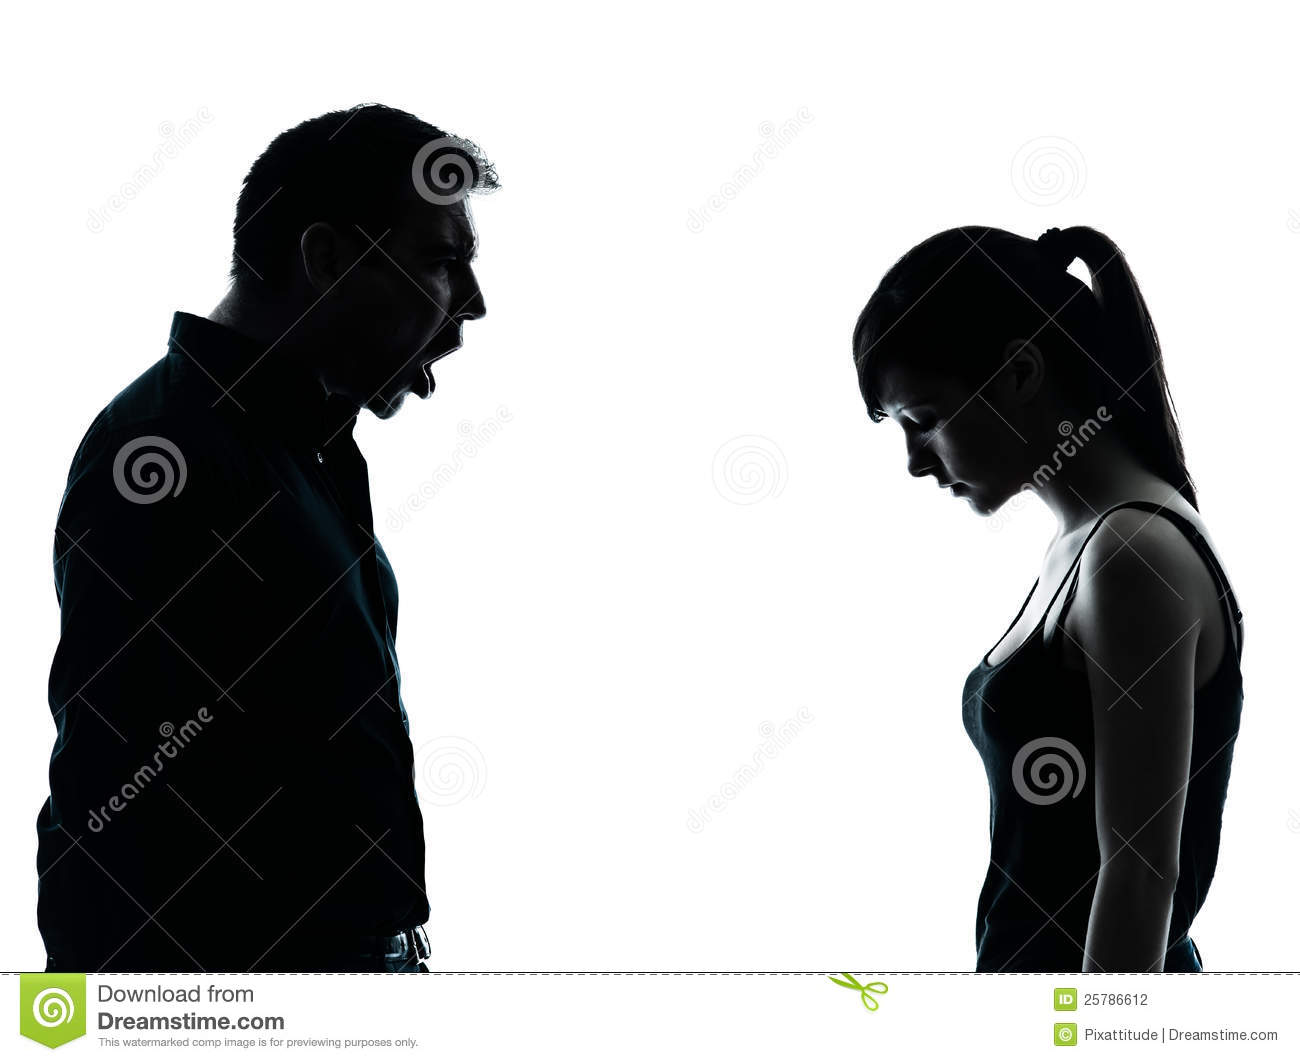 conflict father The impact of father's versus mother's arrest is unknown and needs to be assessed in future research marital discord and conflict, or father absence a combination of these conditions may have already increased the base rates of children's problem behaviors consequently.